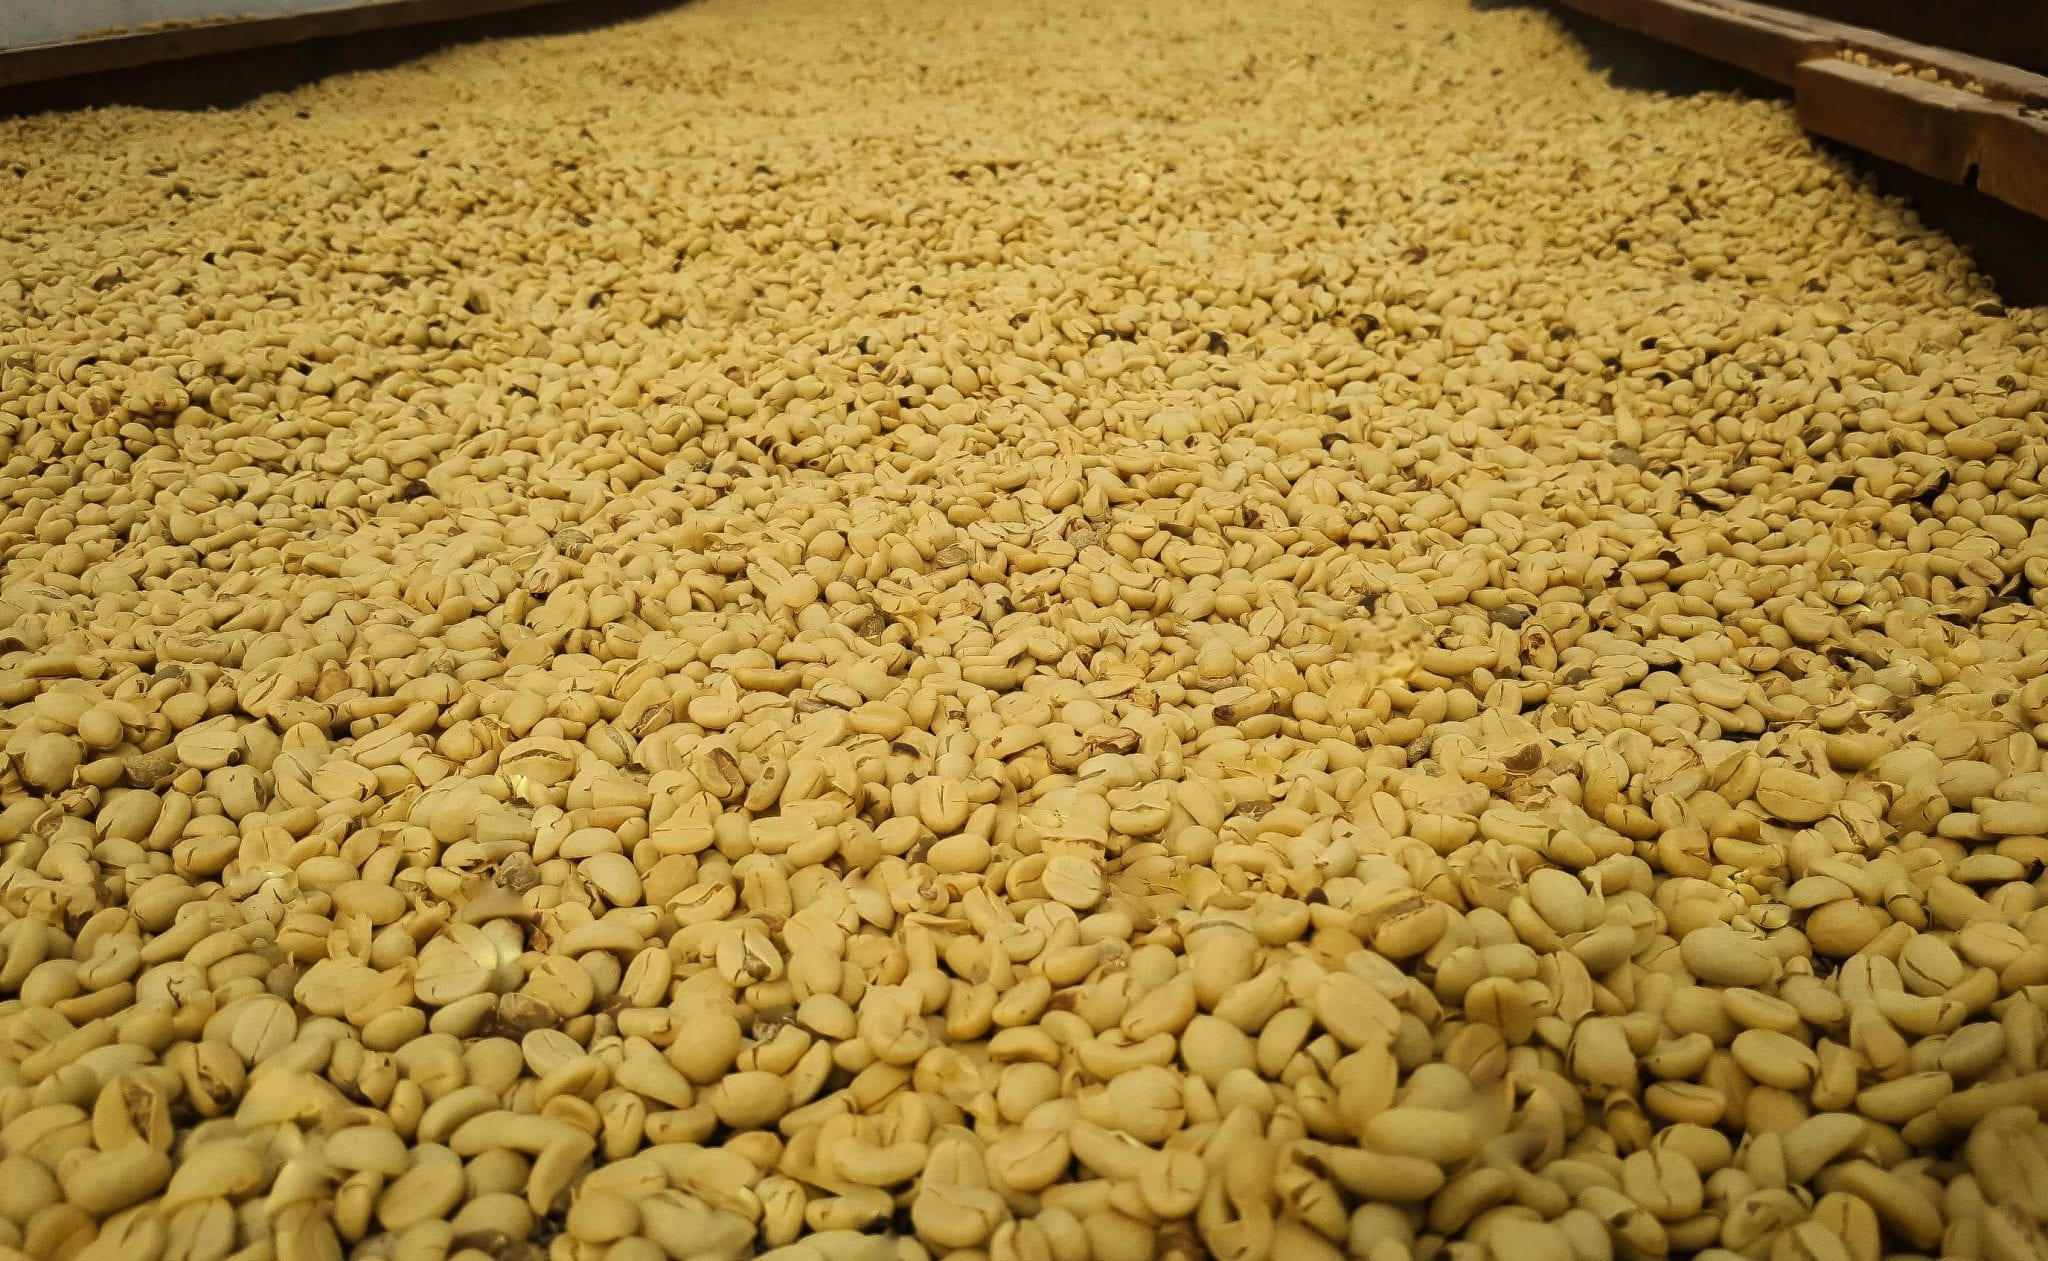 Washed coffee beans drying